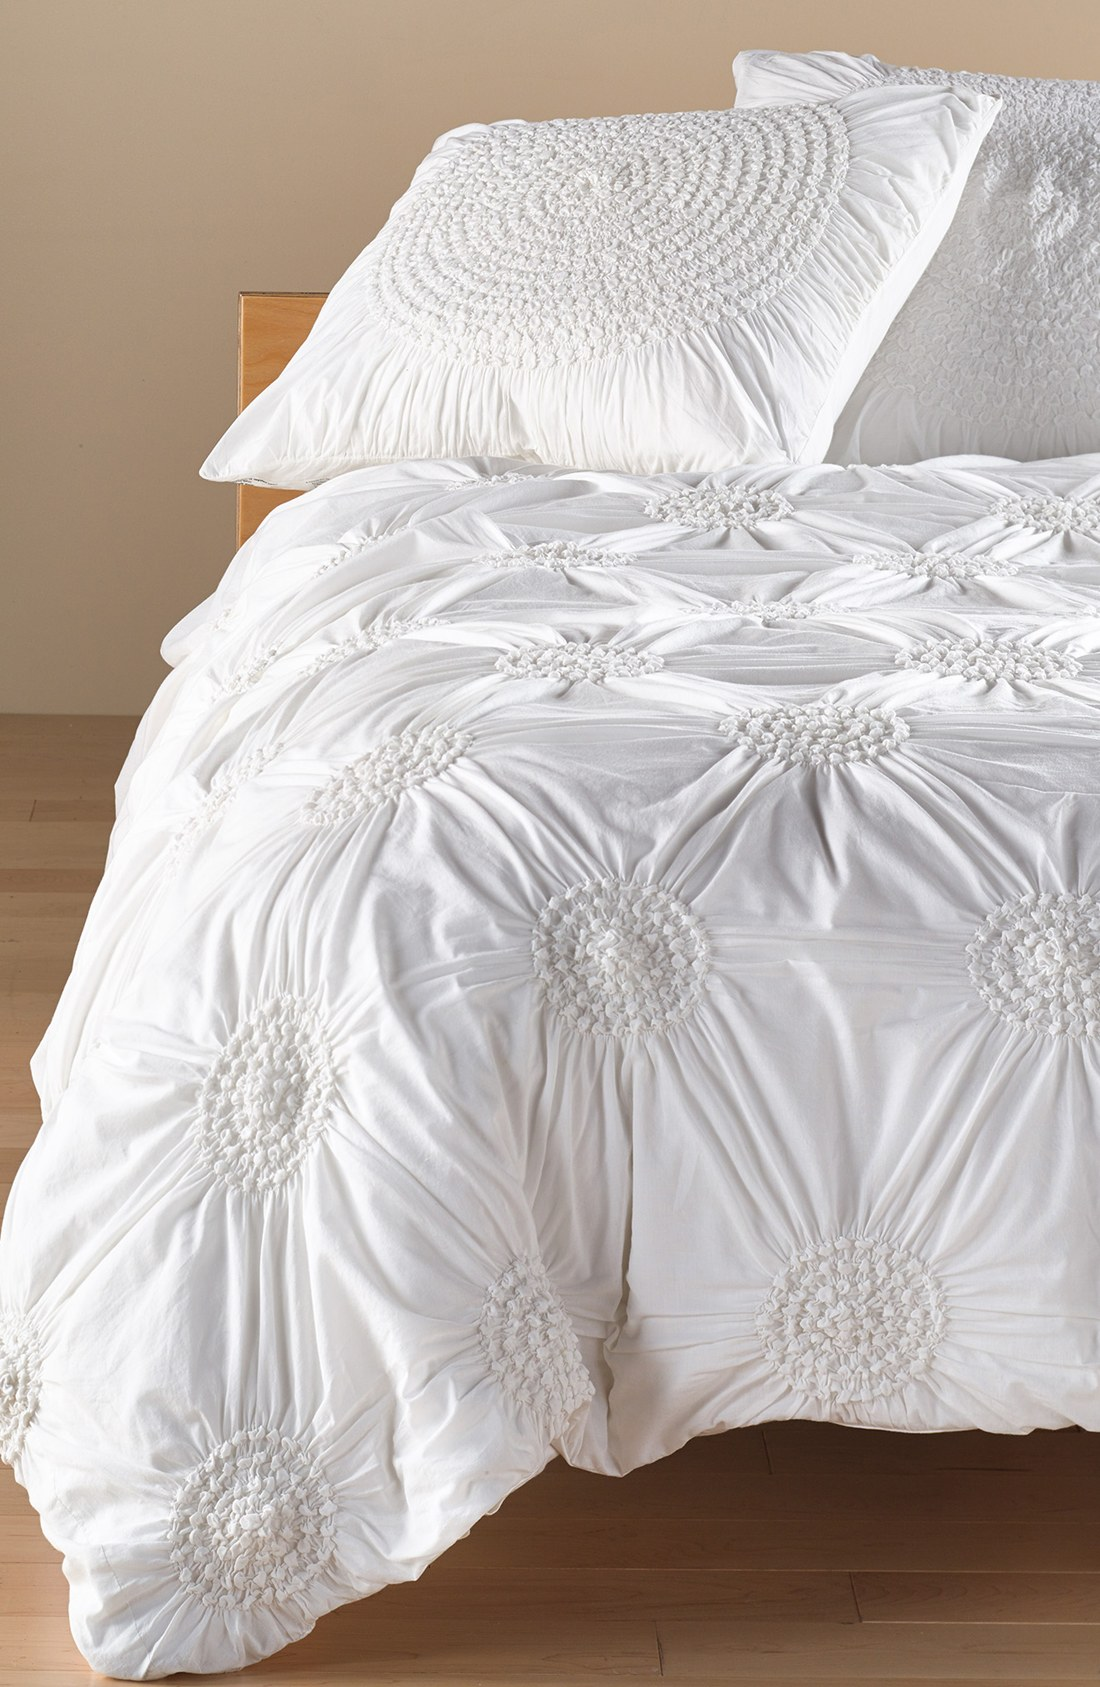 Full Size Duvet Covers | Target Duvet | White Duvet Cover Queen